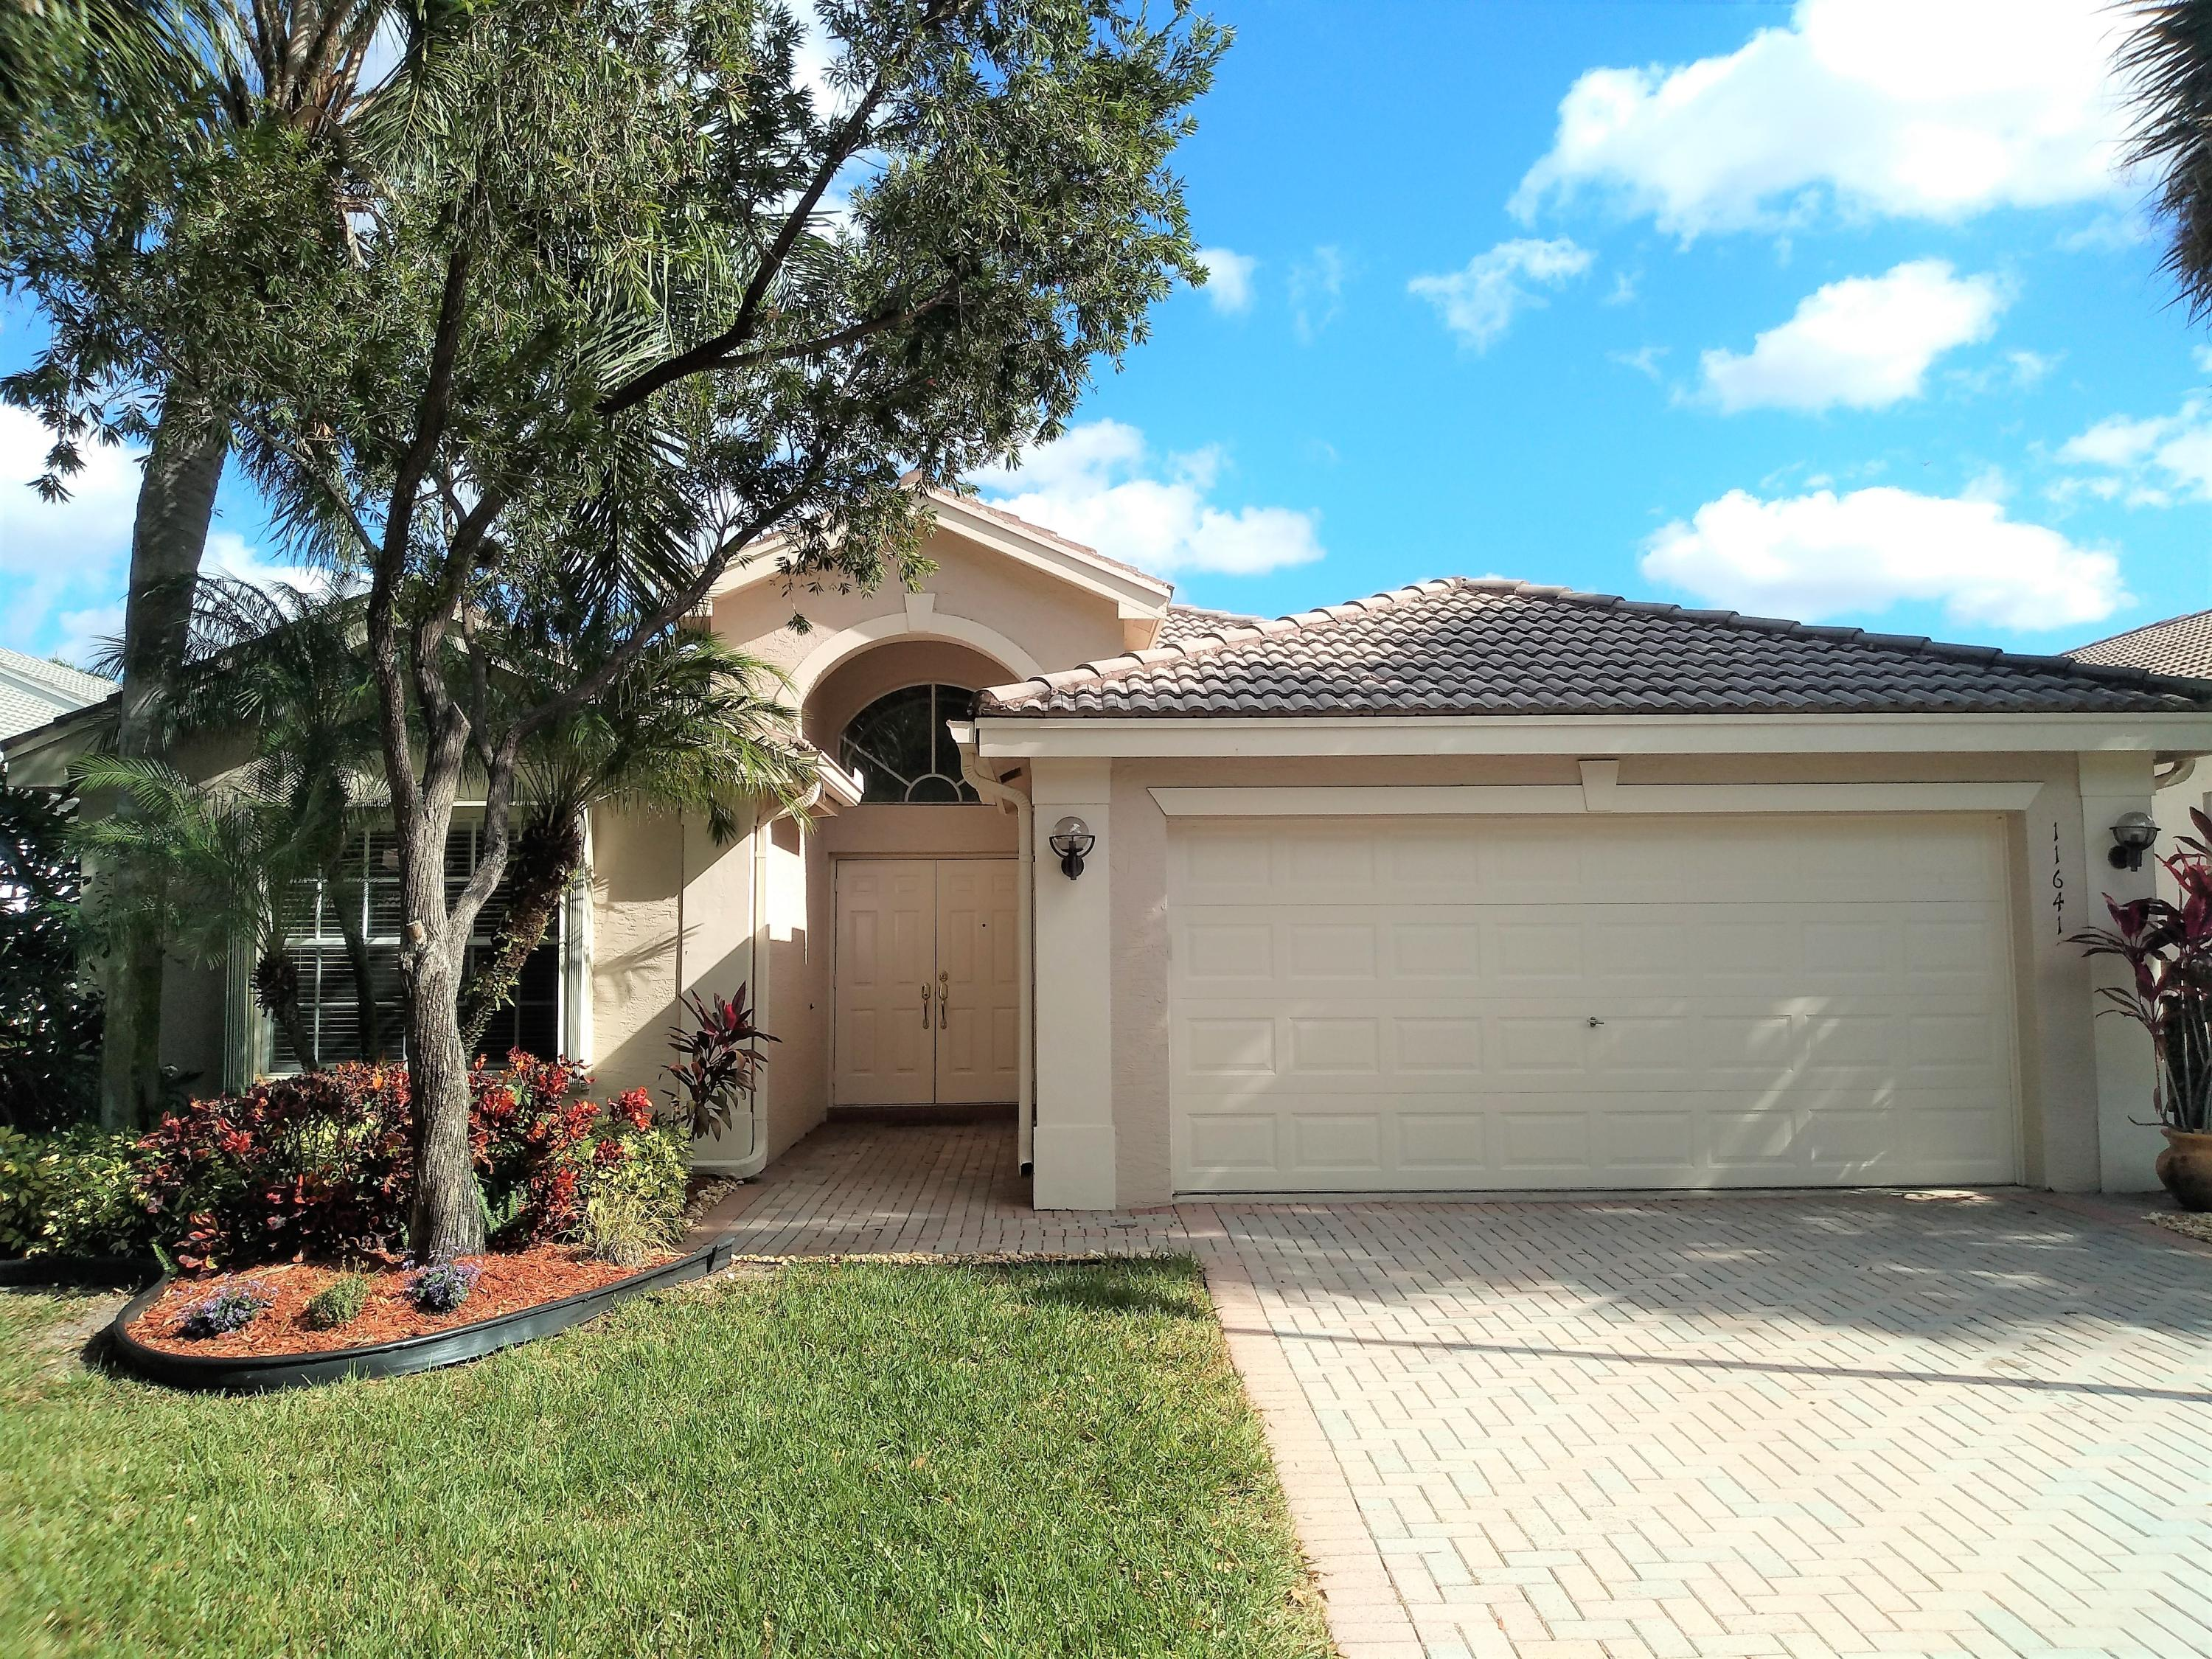 VALENCIA LAKES home 11641 Castellon Court Boynton Beach FL 33437